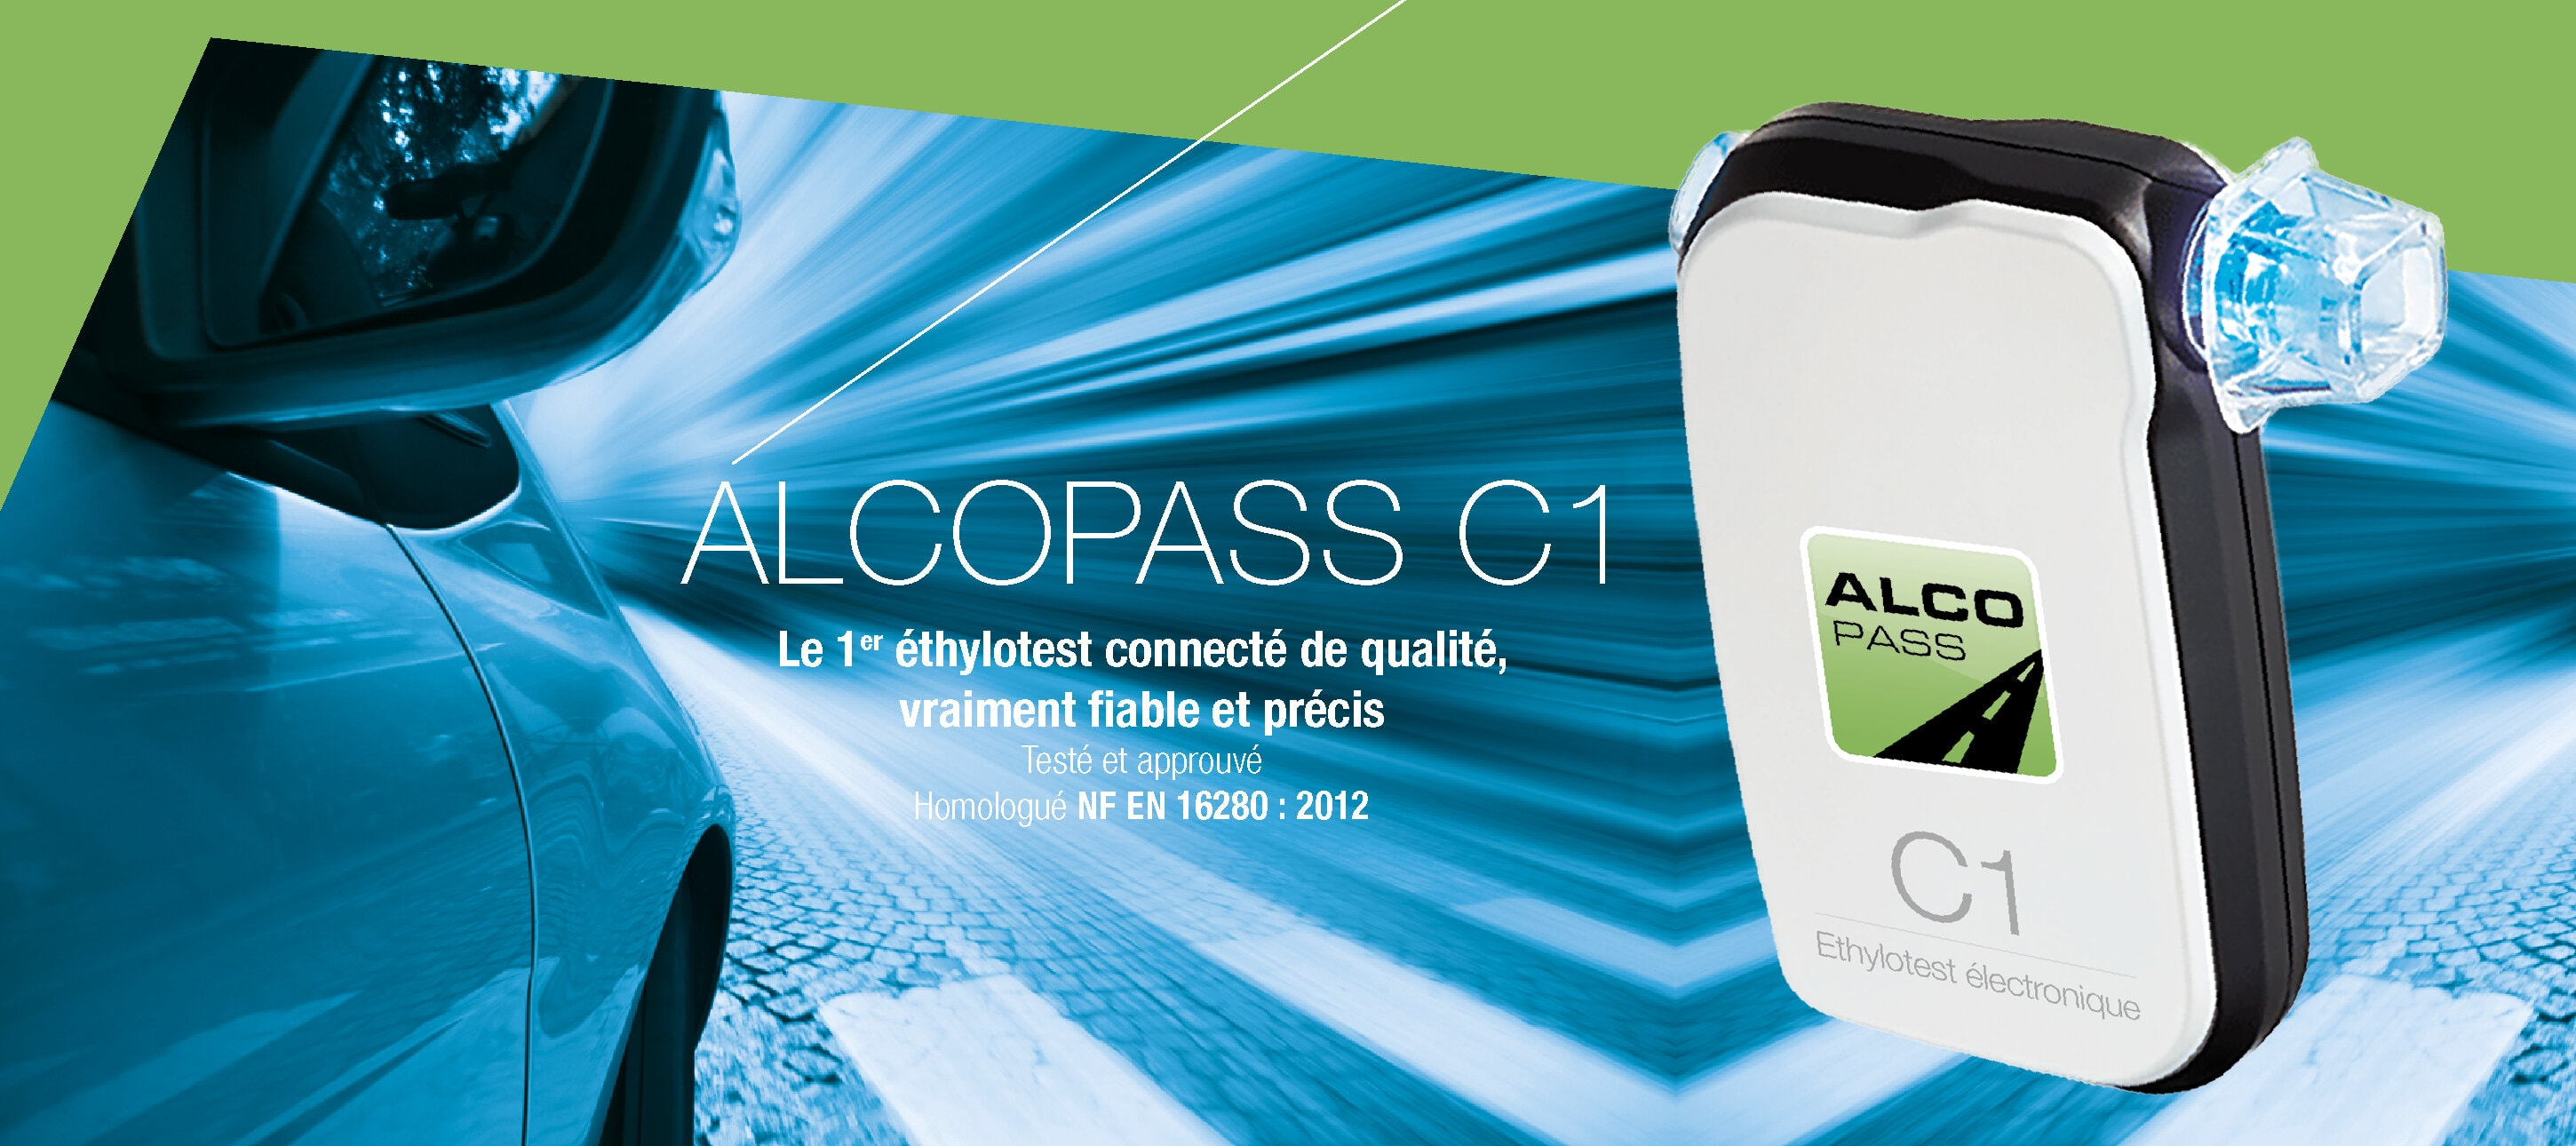 ethylotest connecté Alcopass C1